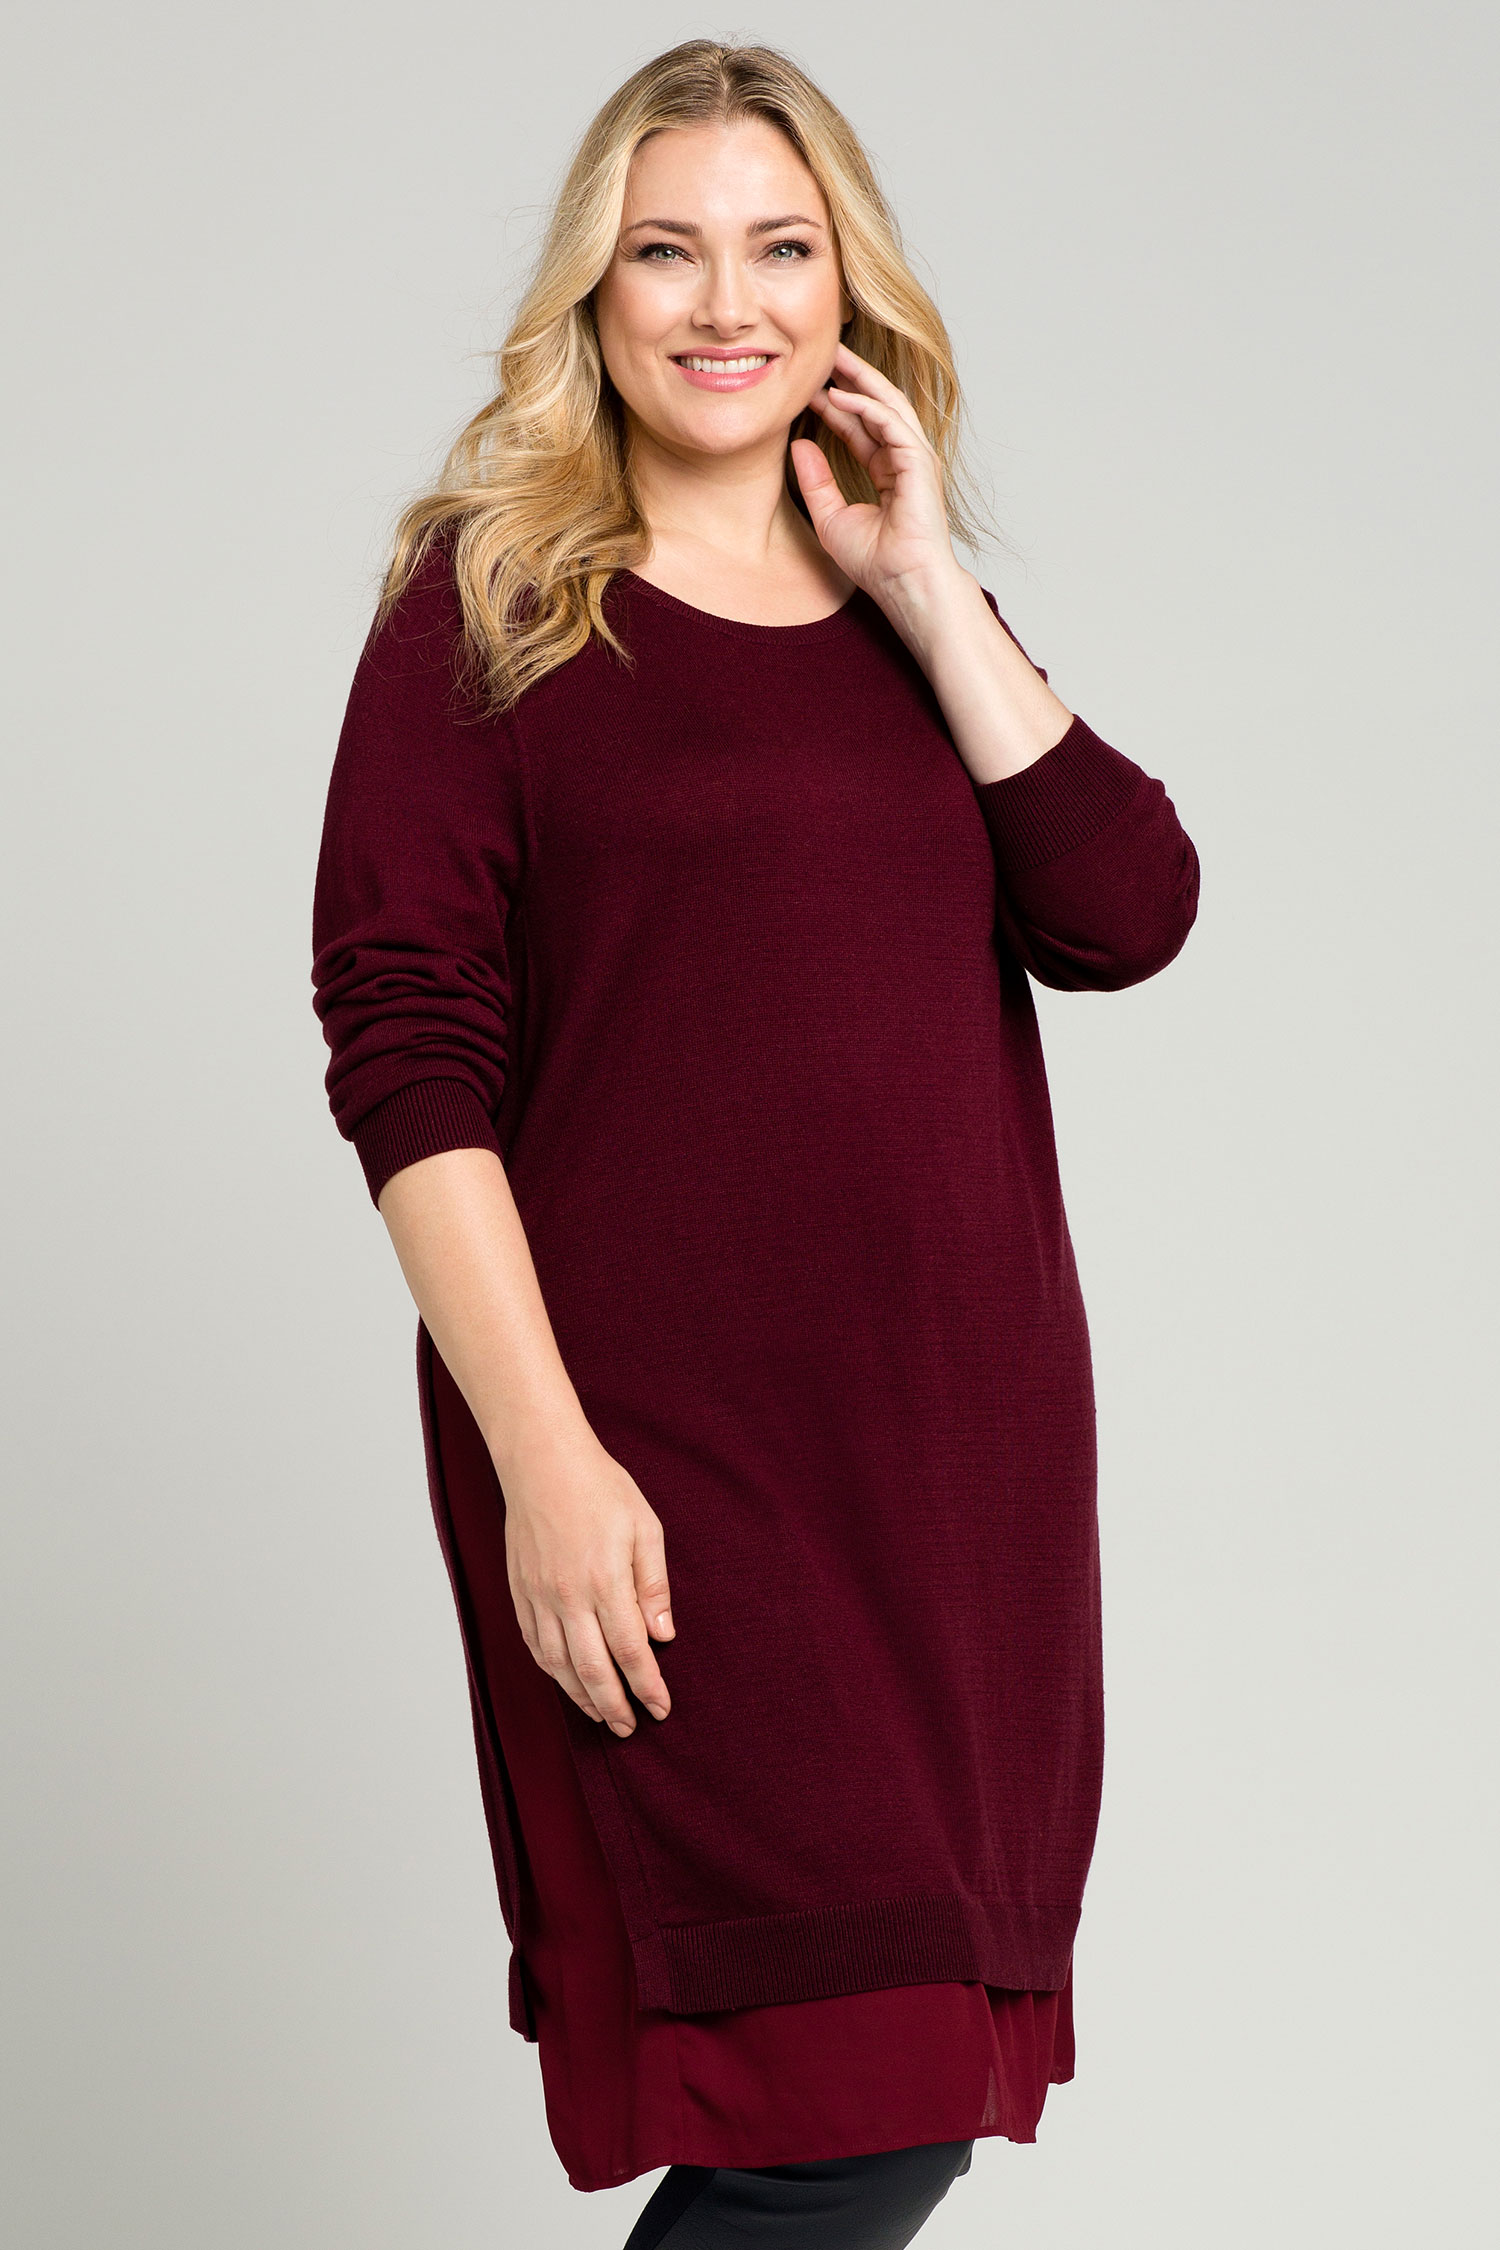 Emerge Woman Knit Tunic